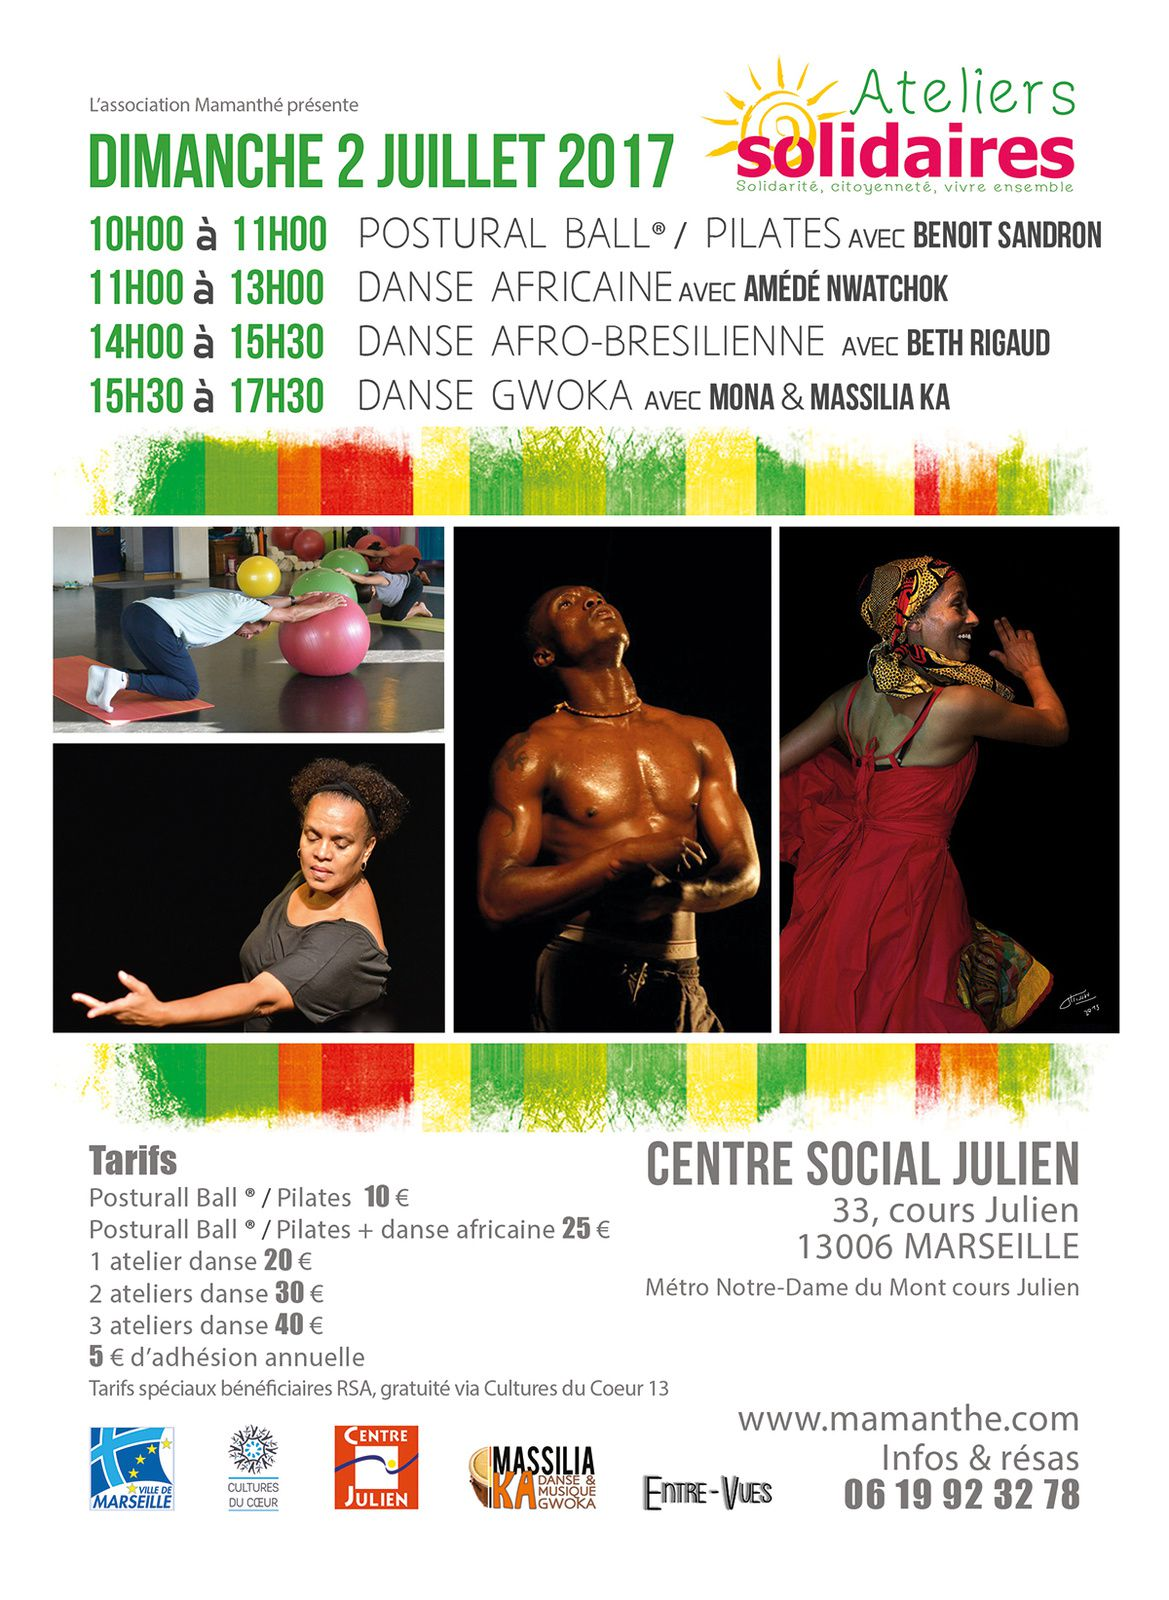 02/07/17 - Ateliers Solidaires - Marseille